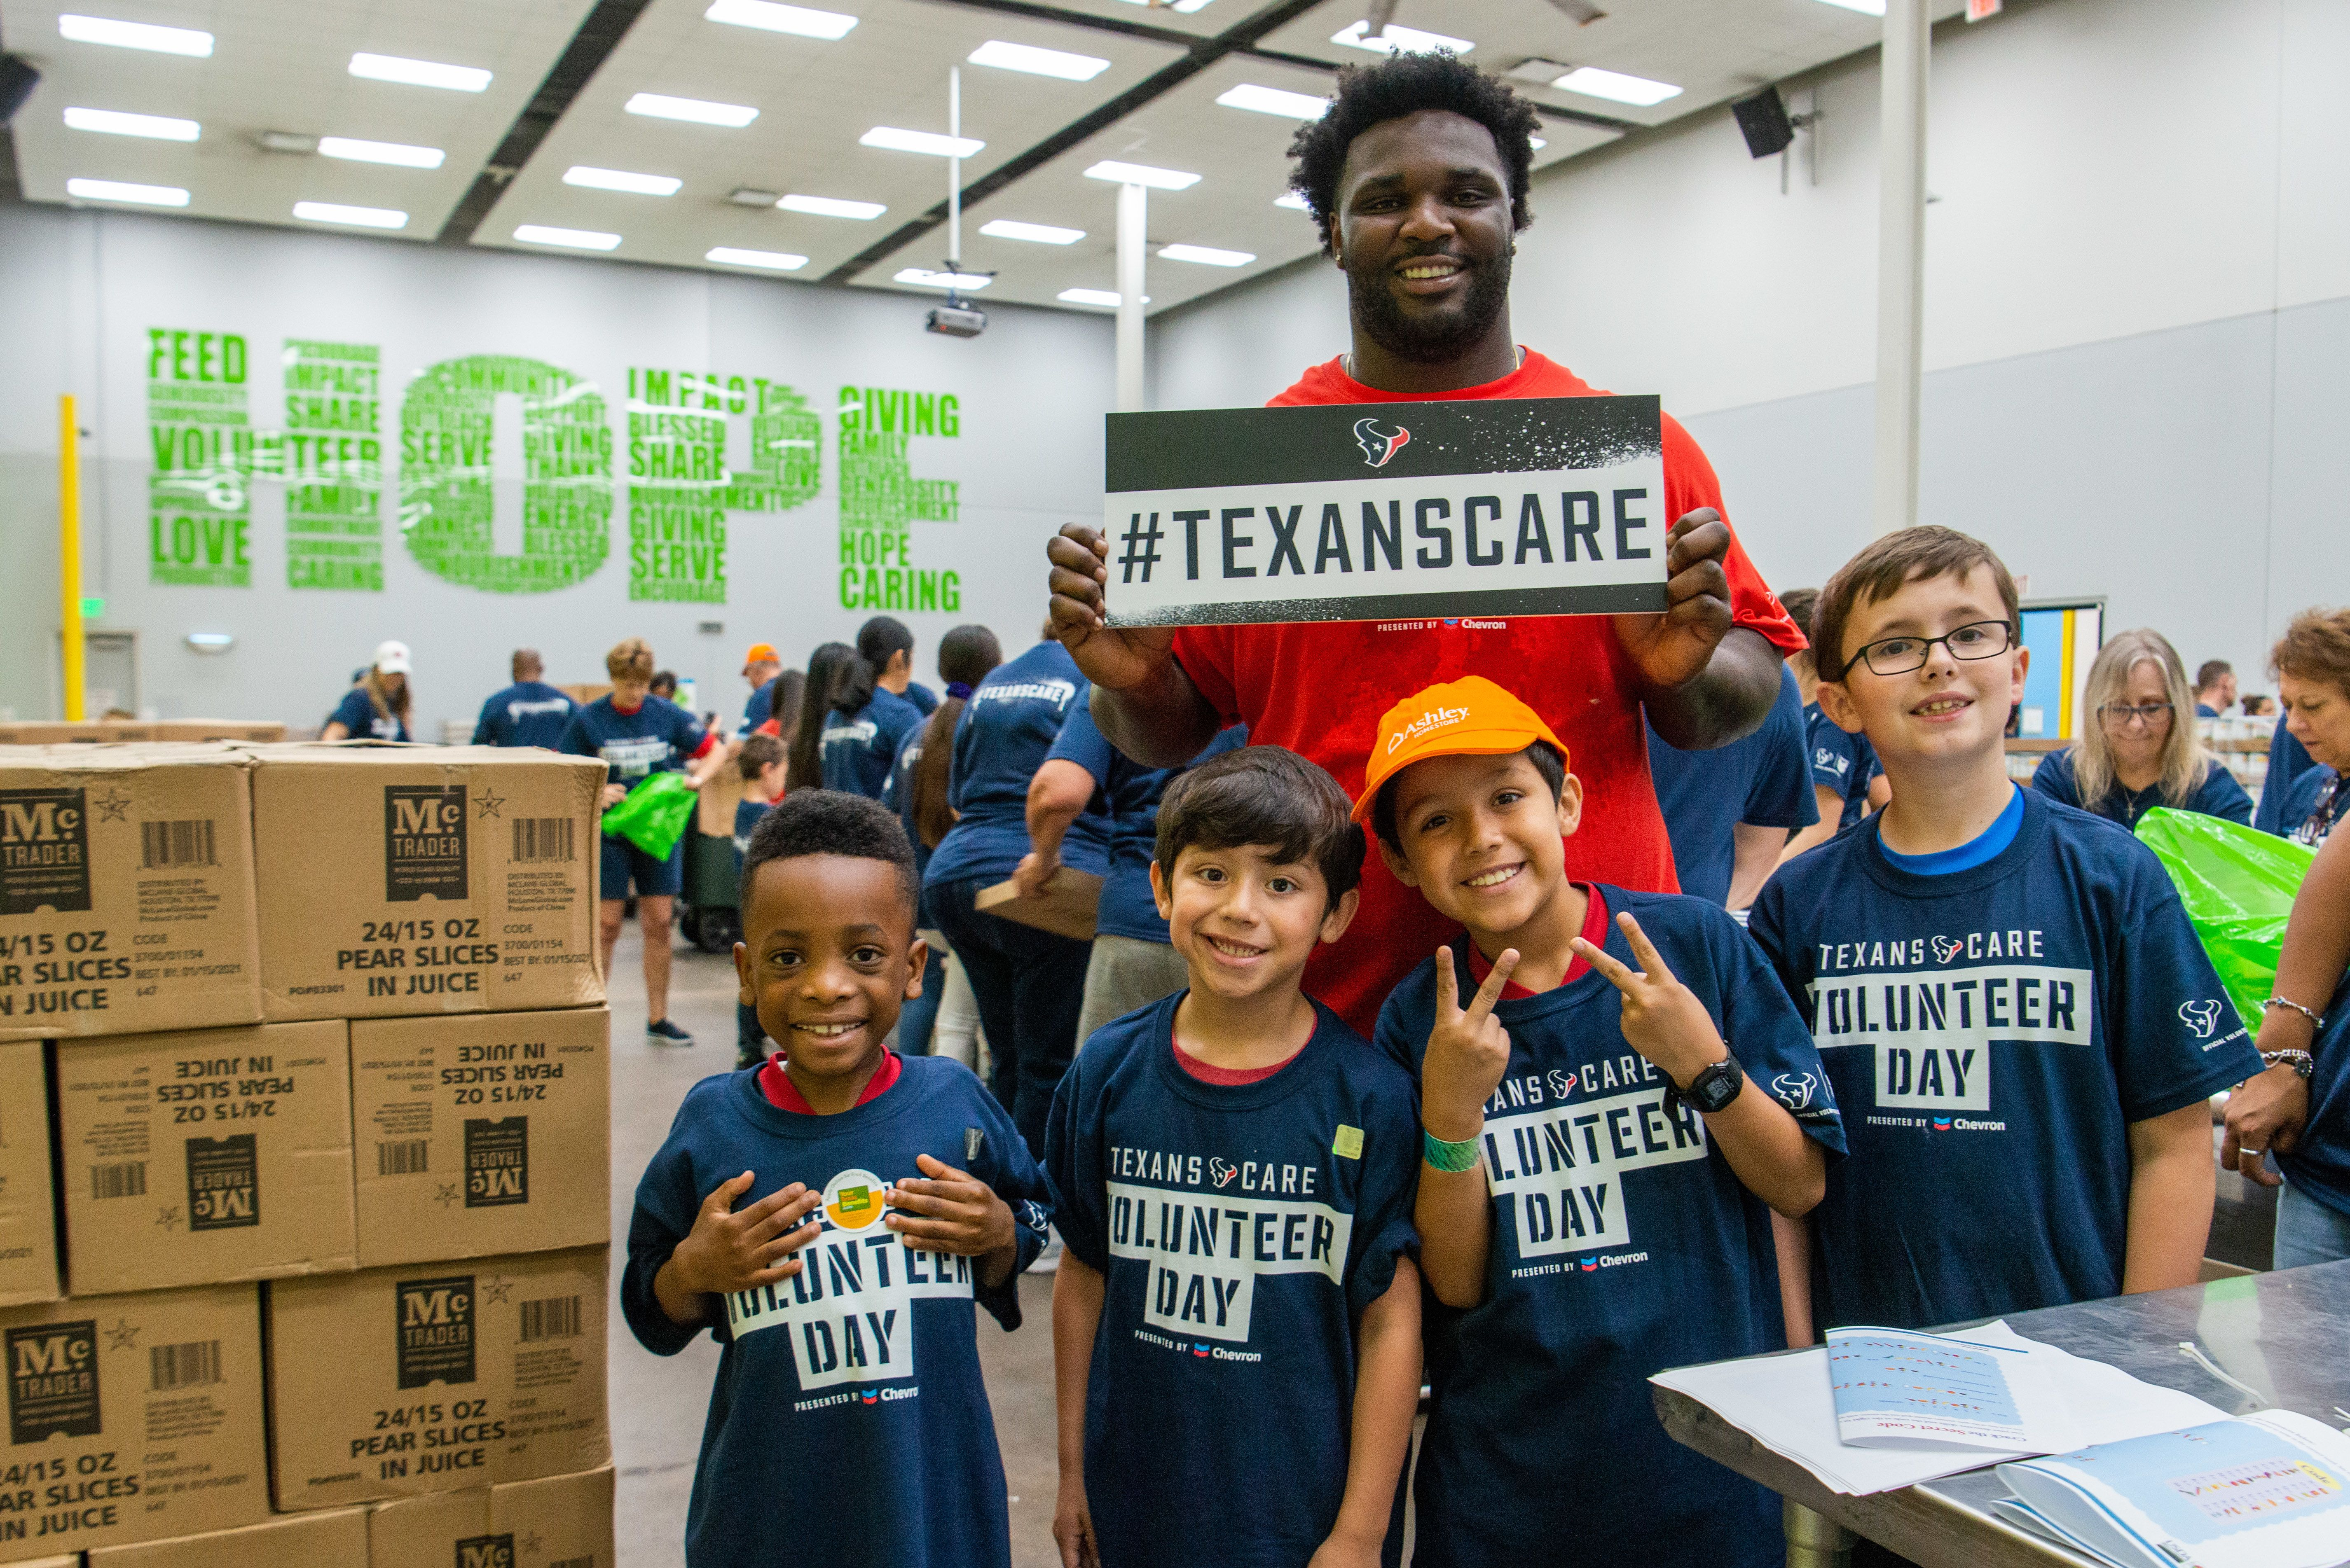 Texans Care Volunteer Day presented by Chevron